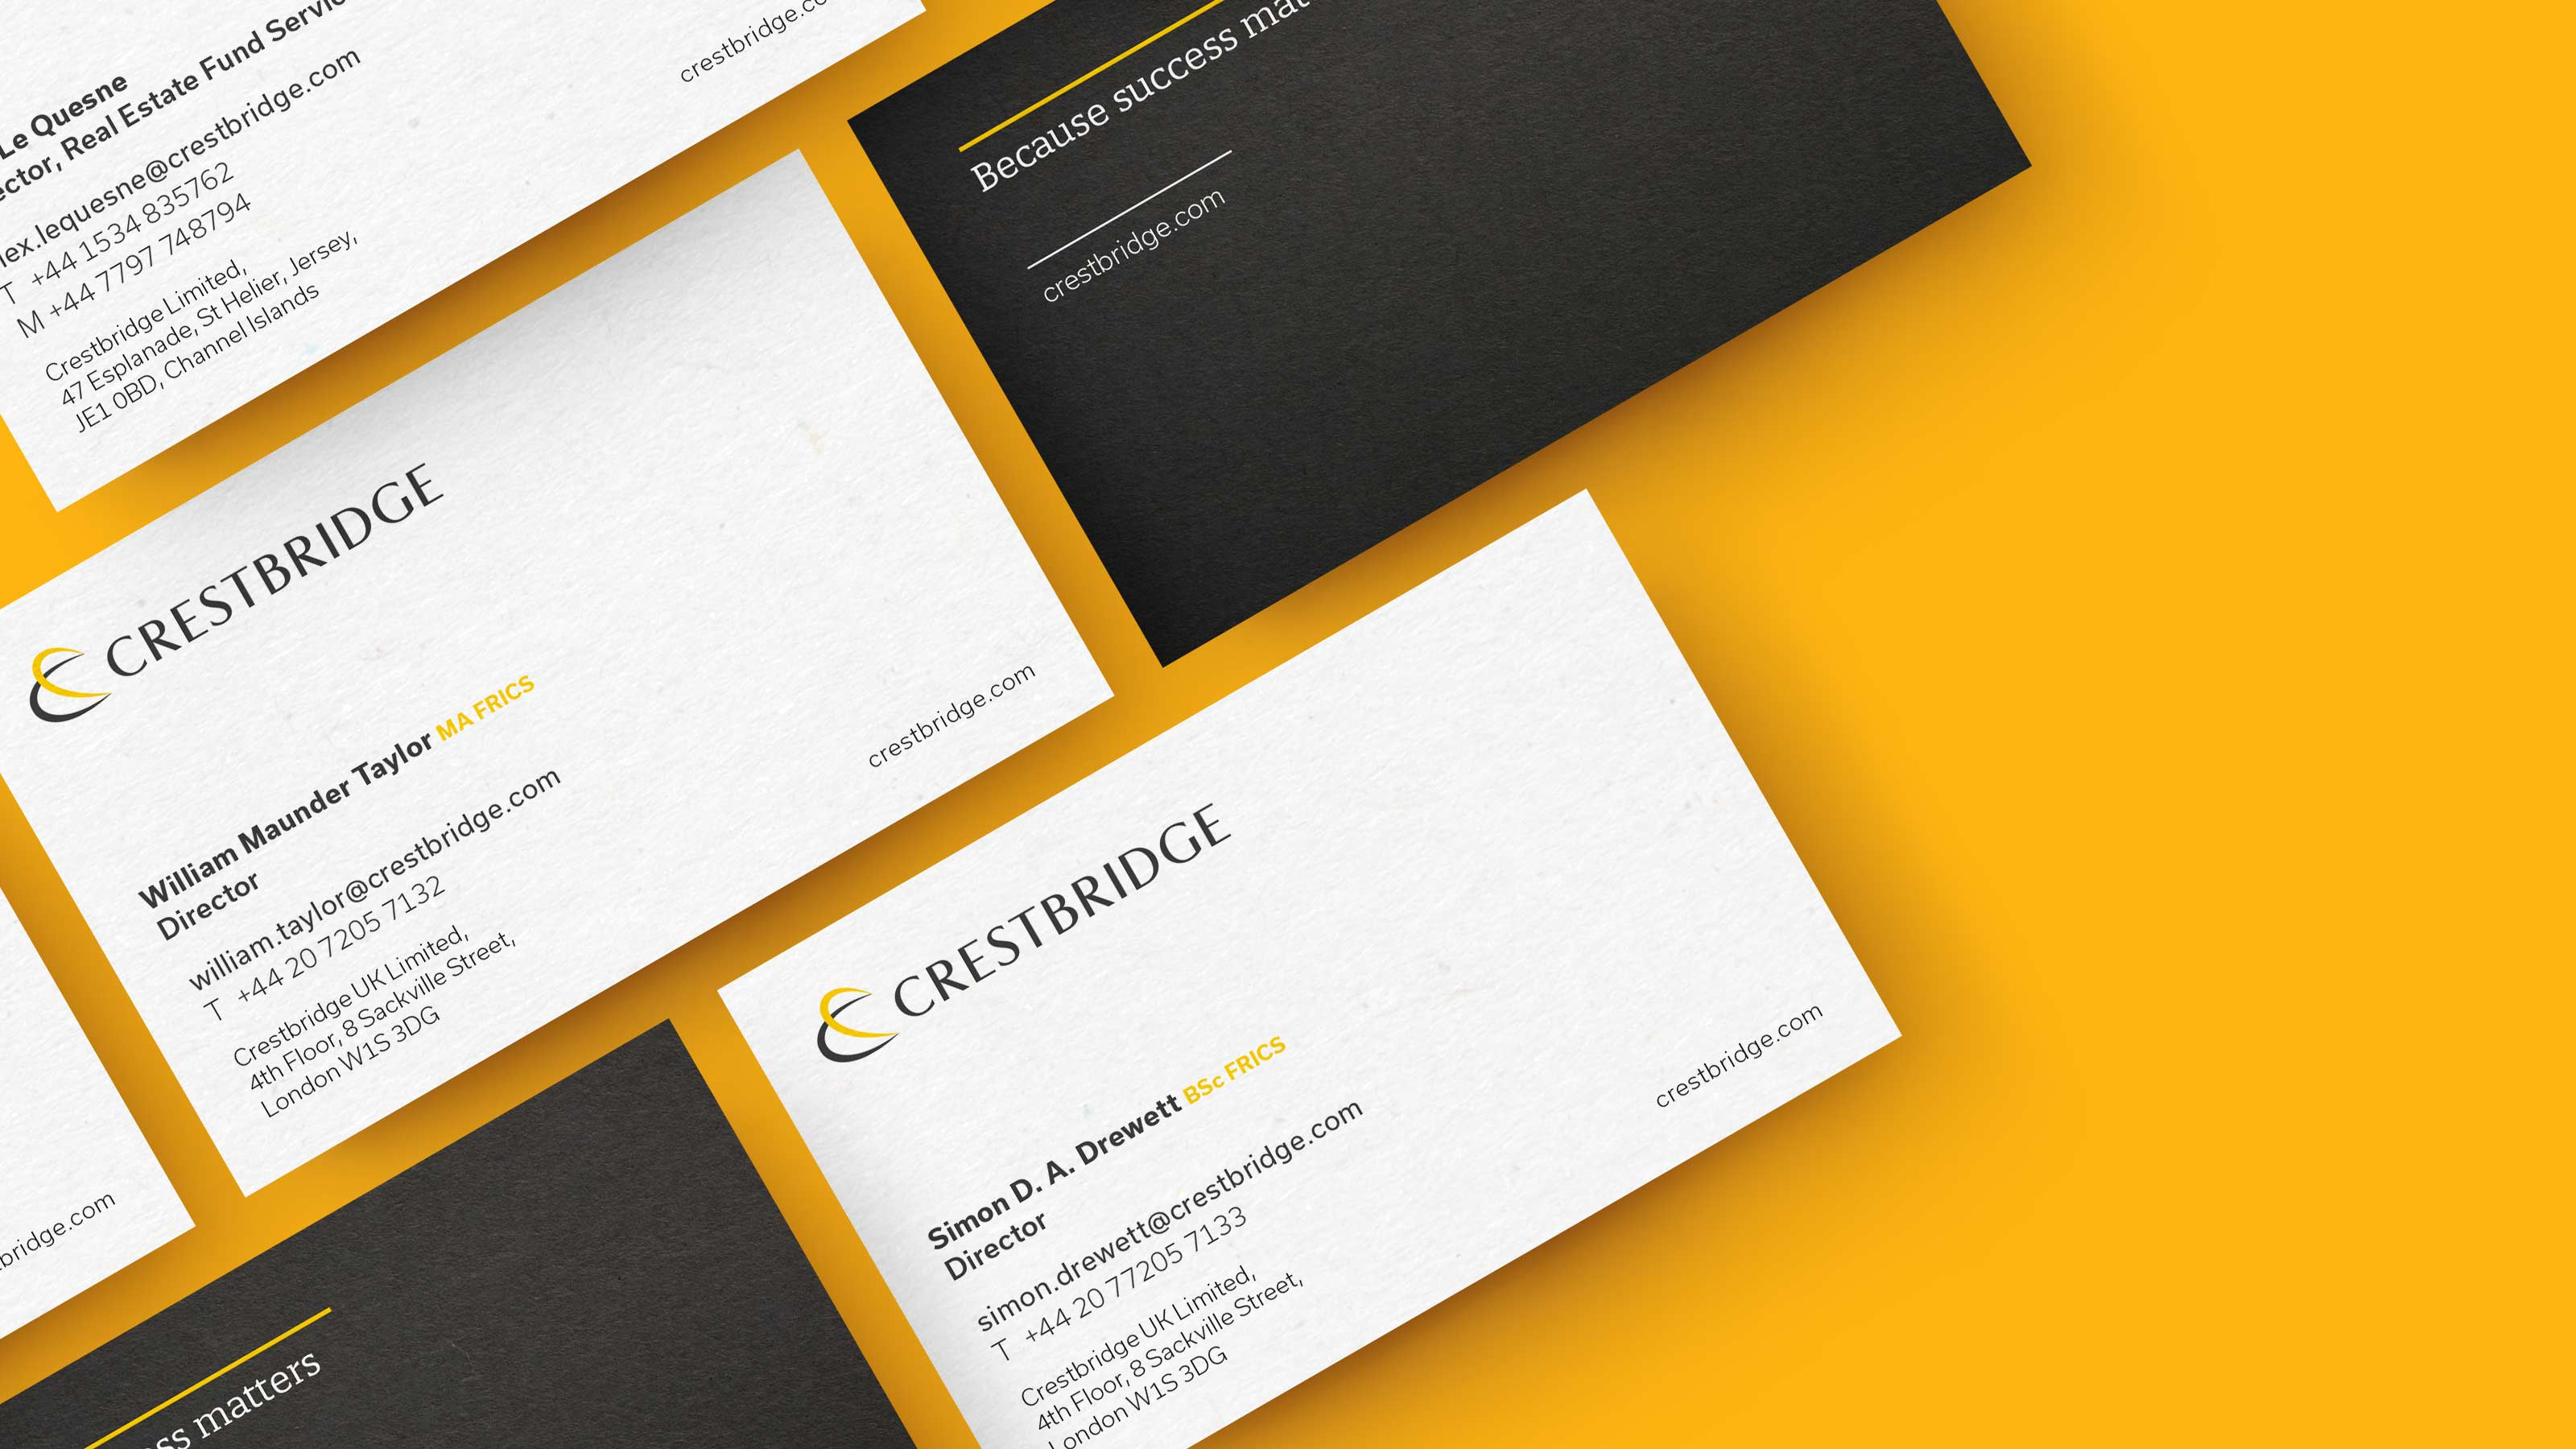 Brand business card design Crestbridge